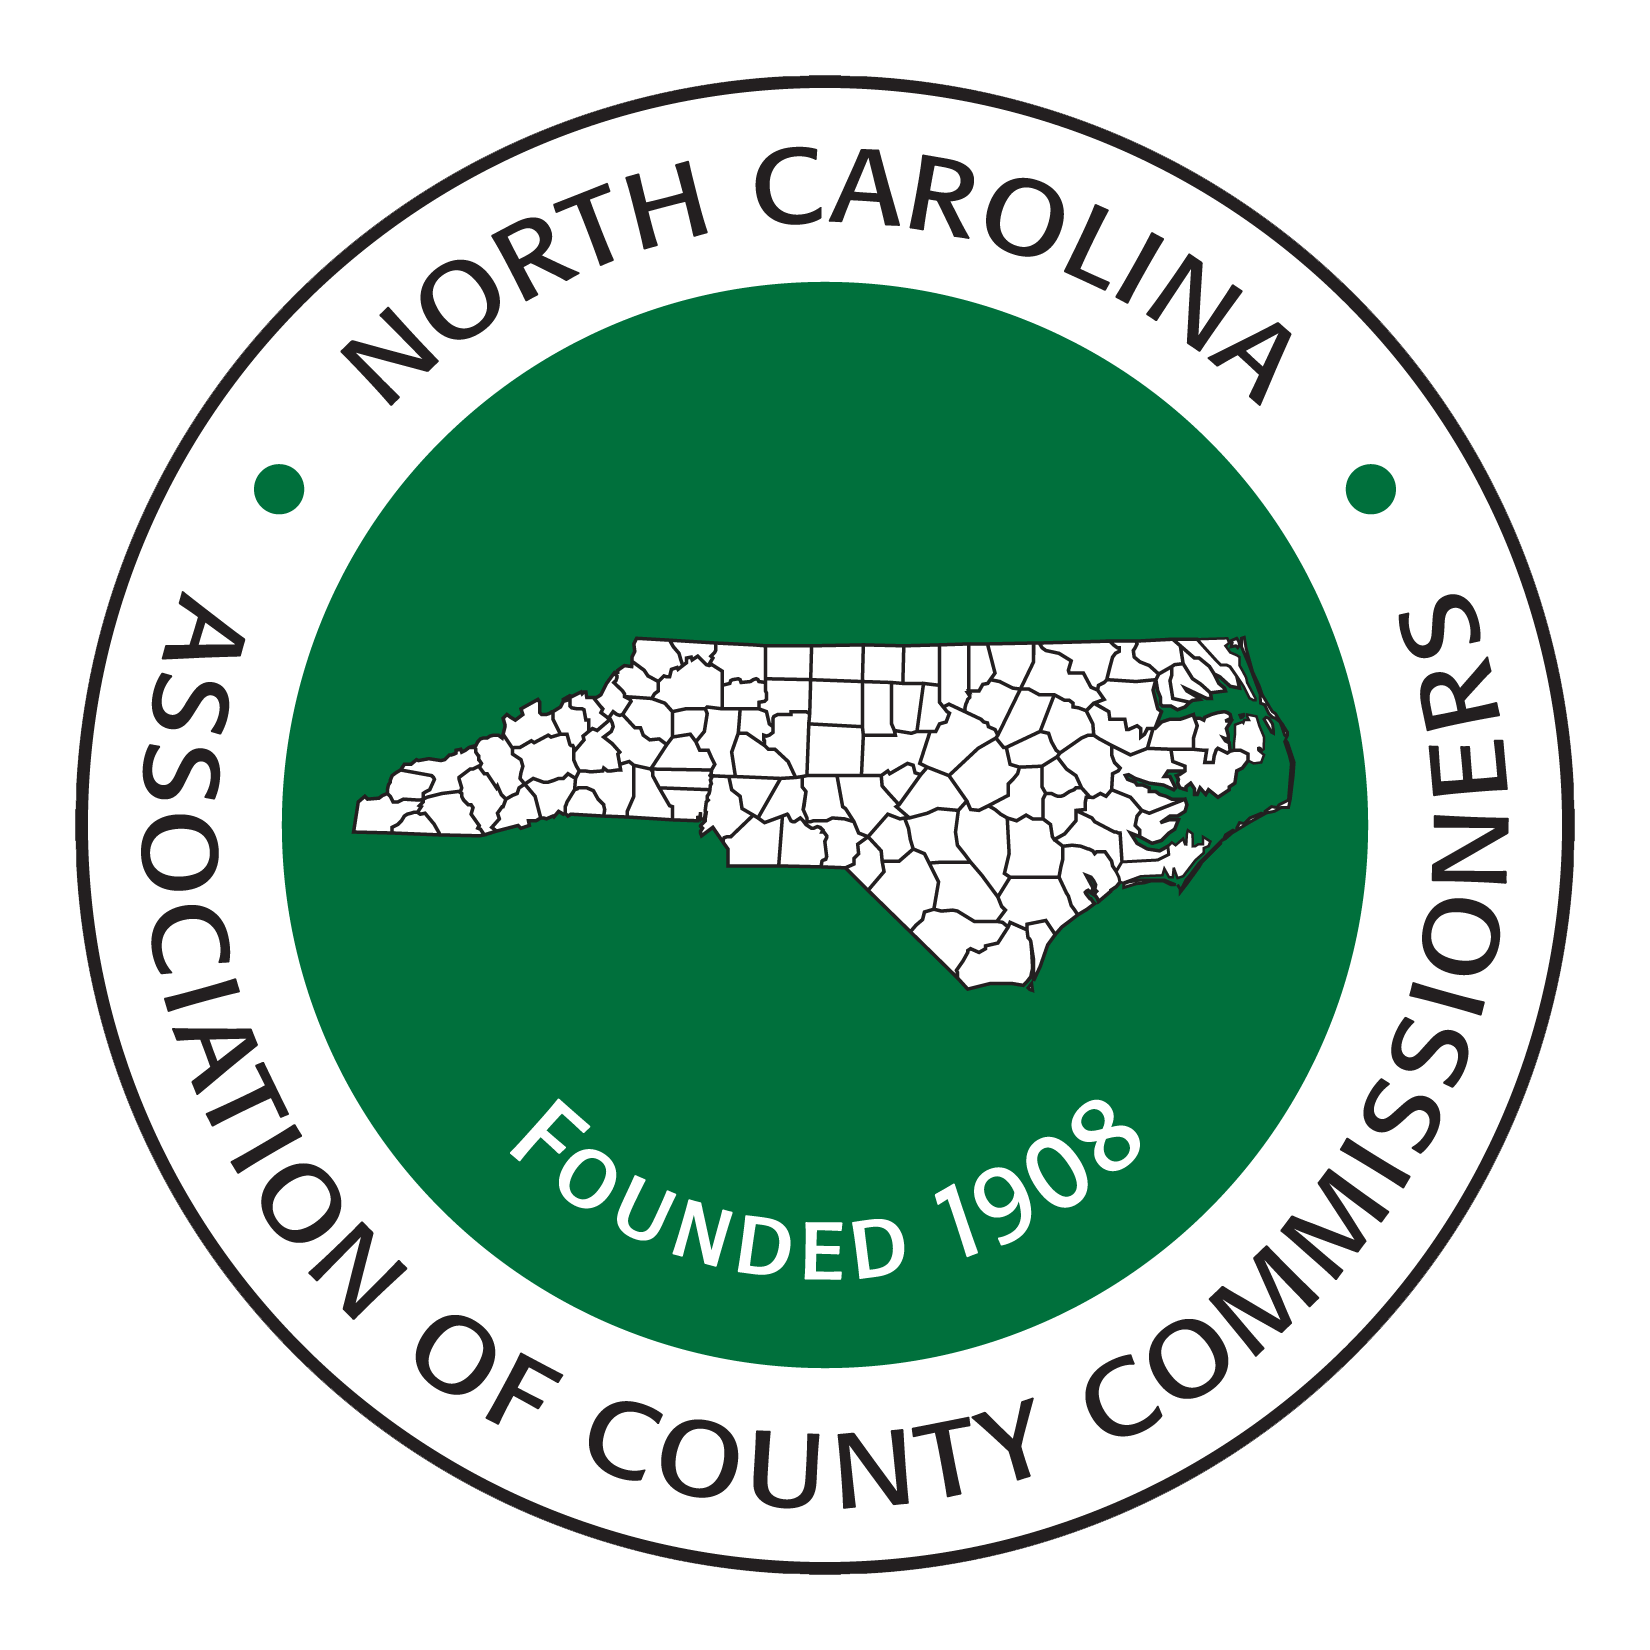 North Carolina Association of County Commissioners Logo